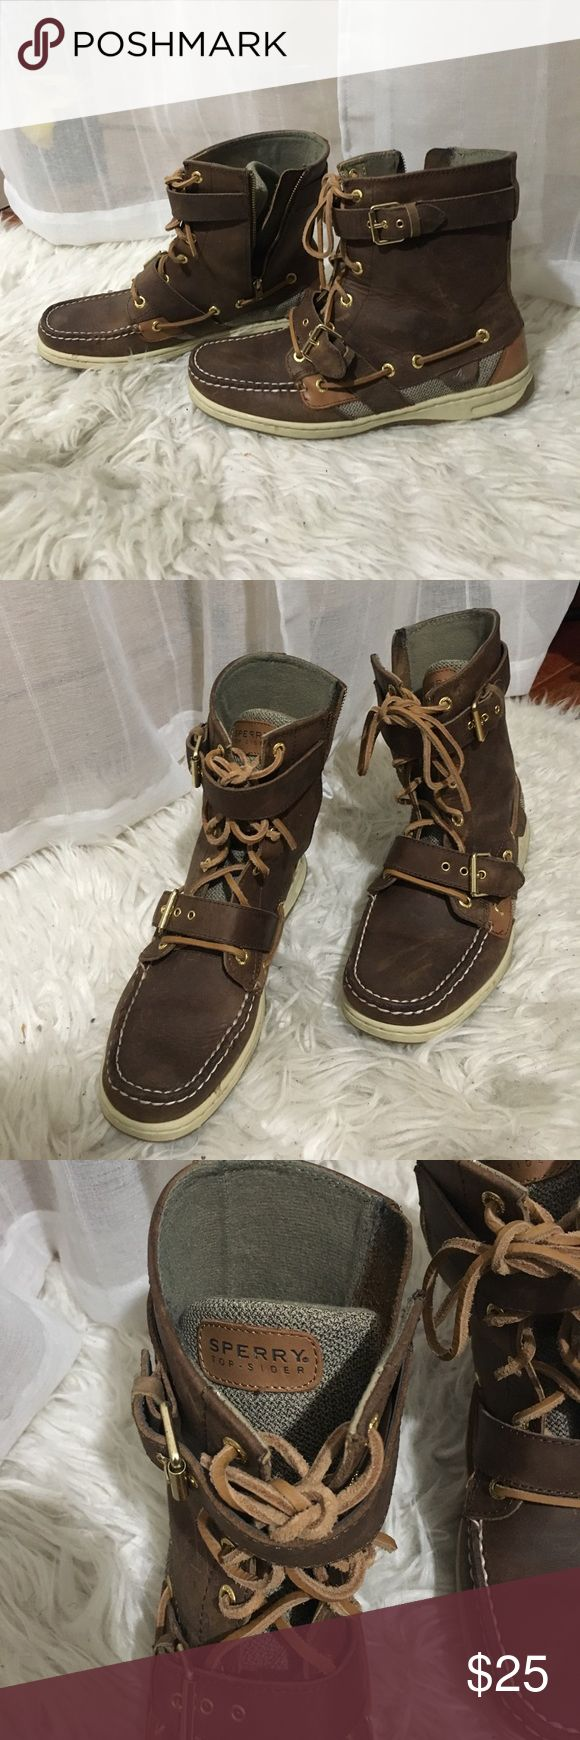 Brown top sider boots Sperrys Brown with gold detail Sperrys Top Sider. Sperry Top-Sider Shoes Ankle Boots & Booties